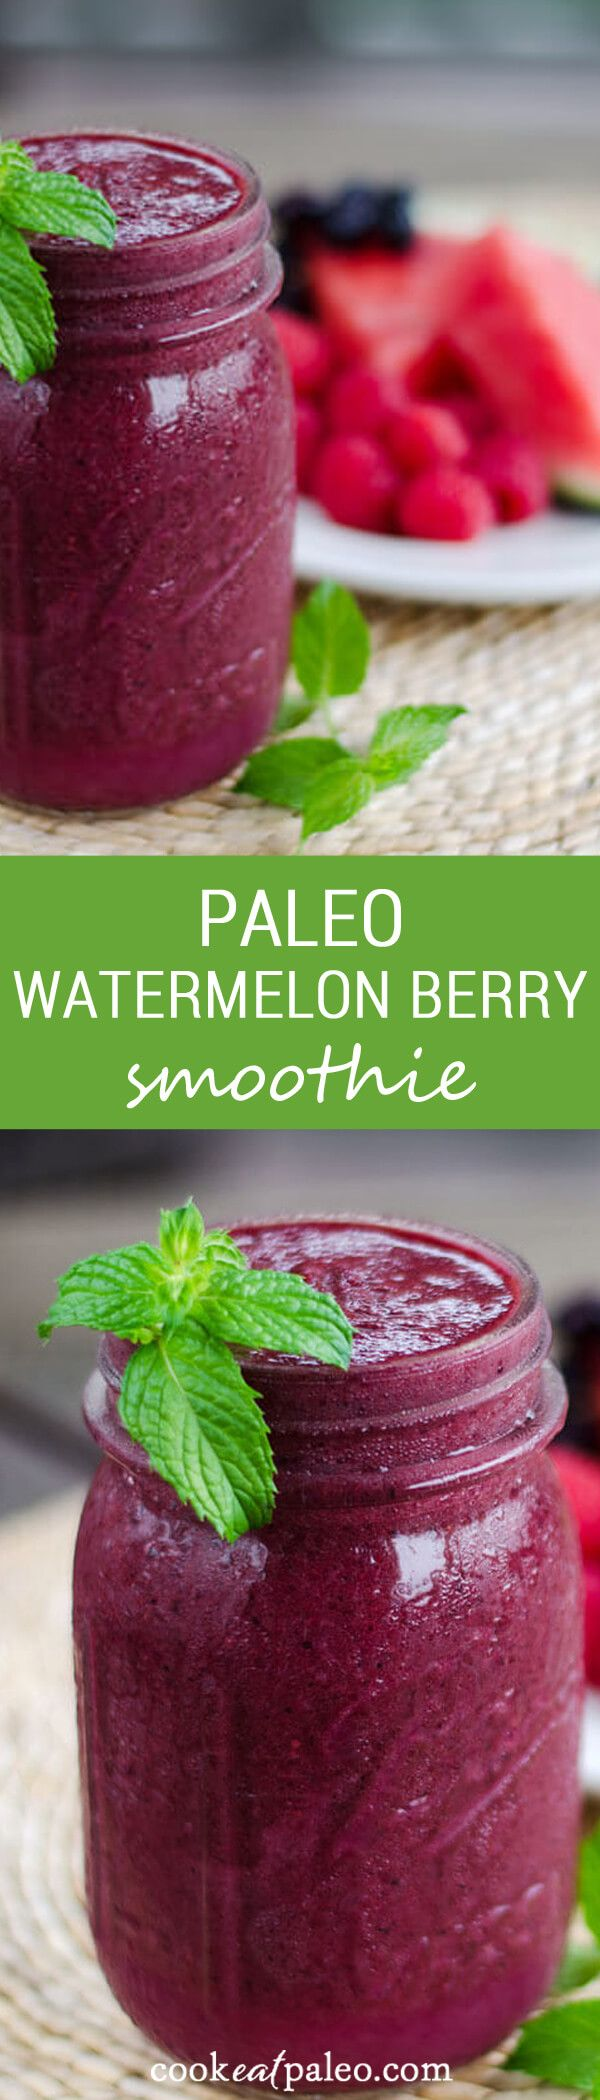 This paleo watermelon berry smoothie is light, refreshing and the perfect taste of summer. It's dairy-free, nut-free, coconut free, and refined sugar-free. ~ http://cookeatpaleo.com